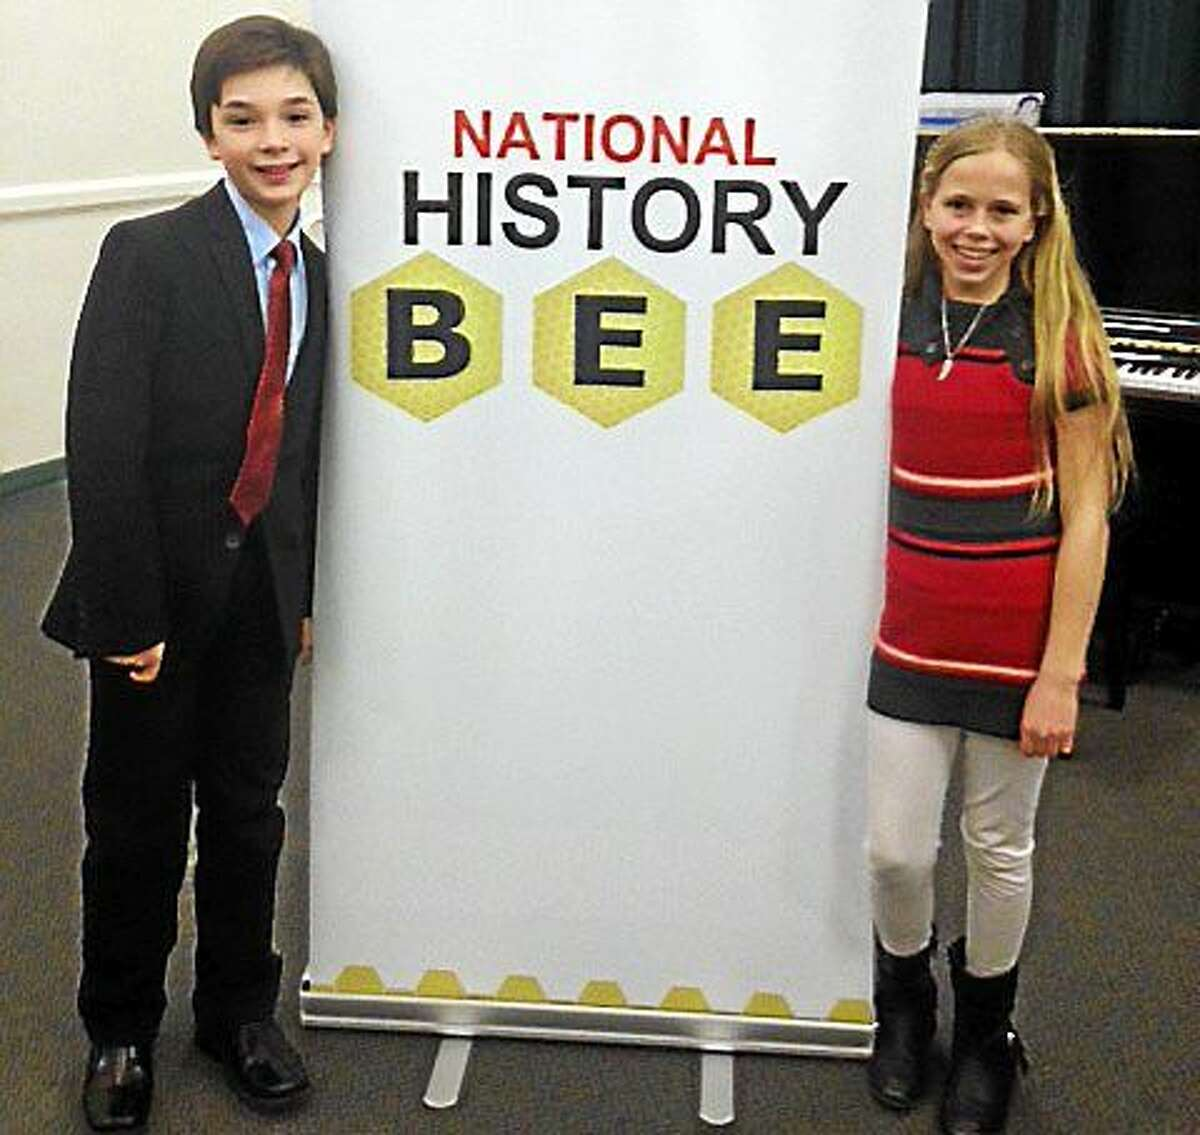 From left, Independent Day School students Jackson Meisner of Deep River and Katie Gendrich of Middletown are among four who have advanced to the National History Bee in Louisville, Kentucky. The competition takes place in late May.